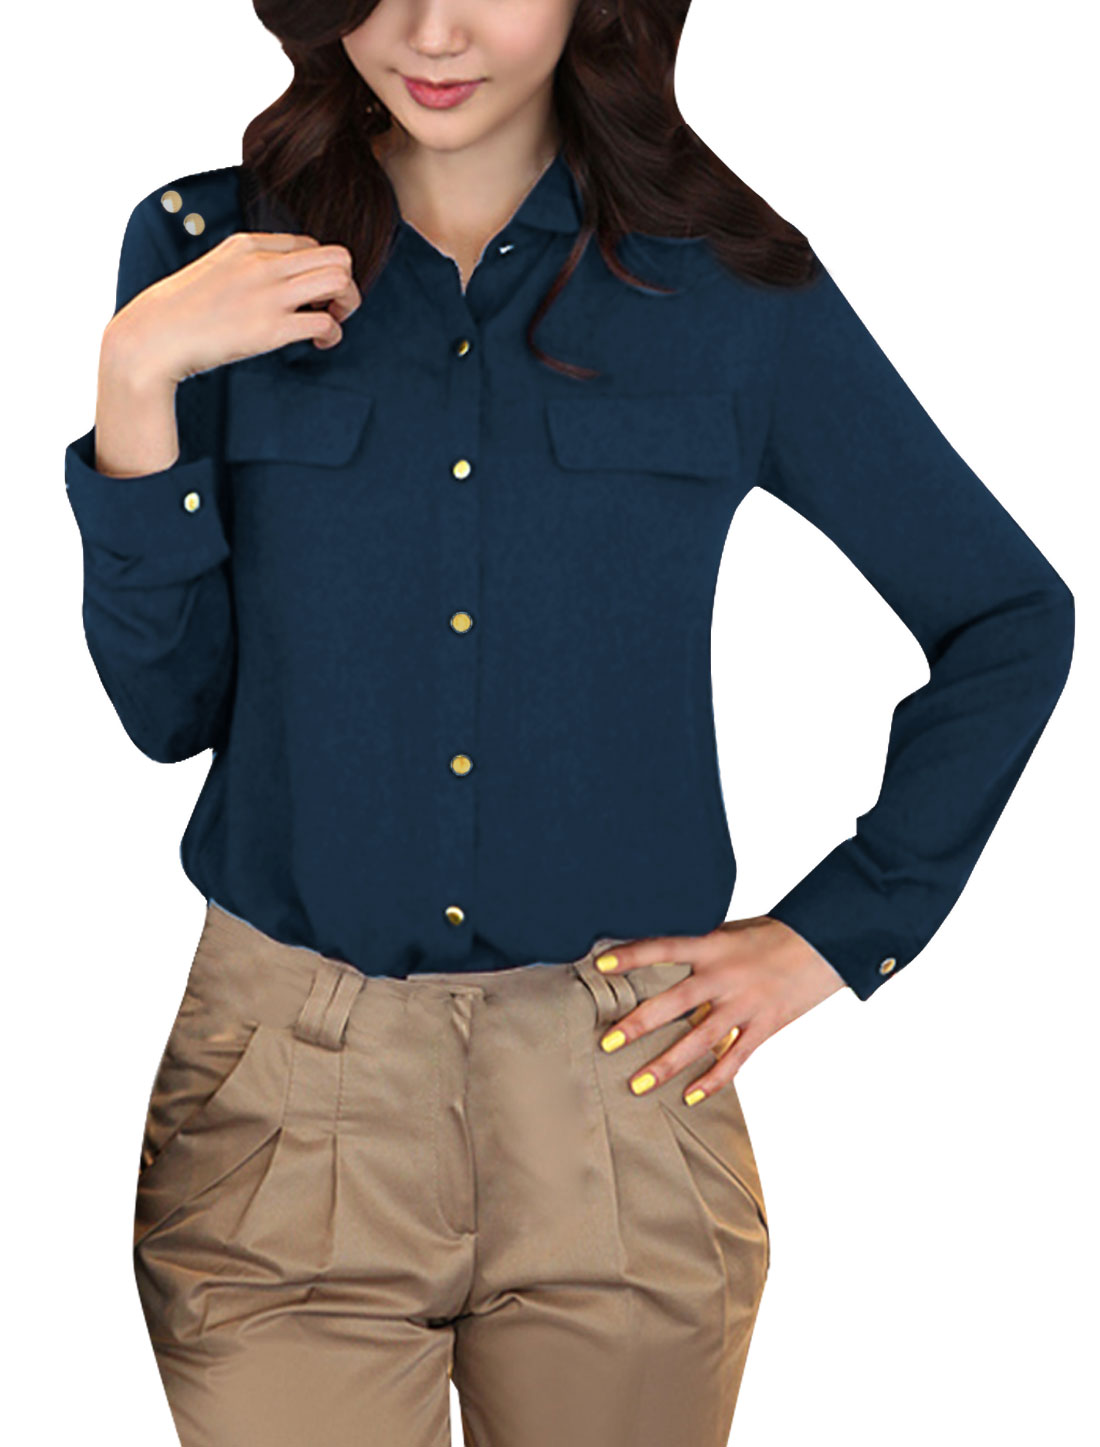 Ladies Chic Point Collar Buttoned Cuff Dark Blue Button Down Shirt M